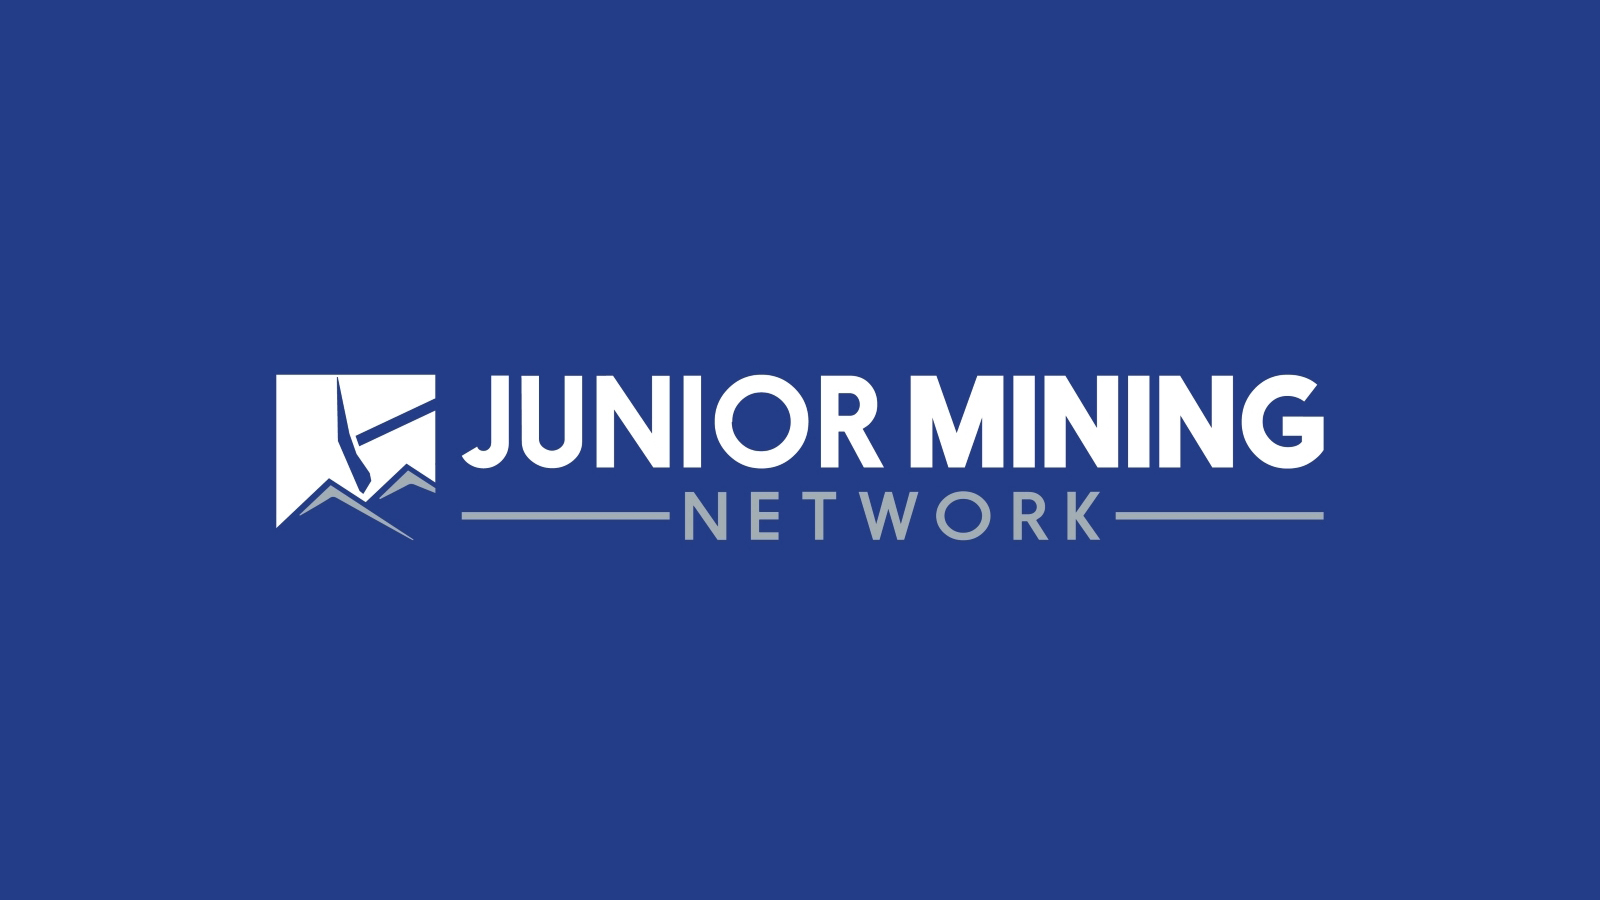 Monument Mining Drills 6 0 Metres Of 3 07 G T Gold At Selinsing Gold Mine In Malaysia Junior Mining Network